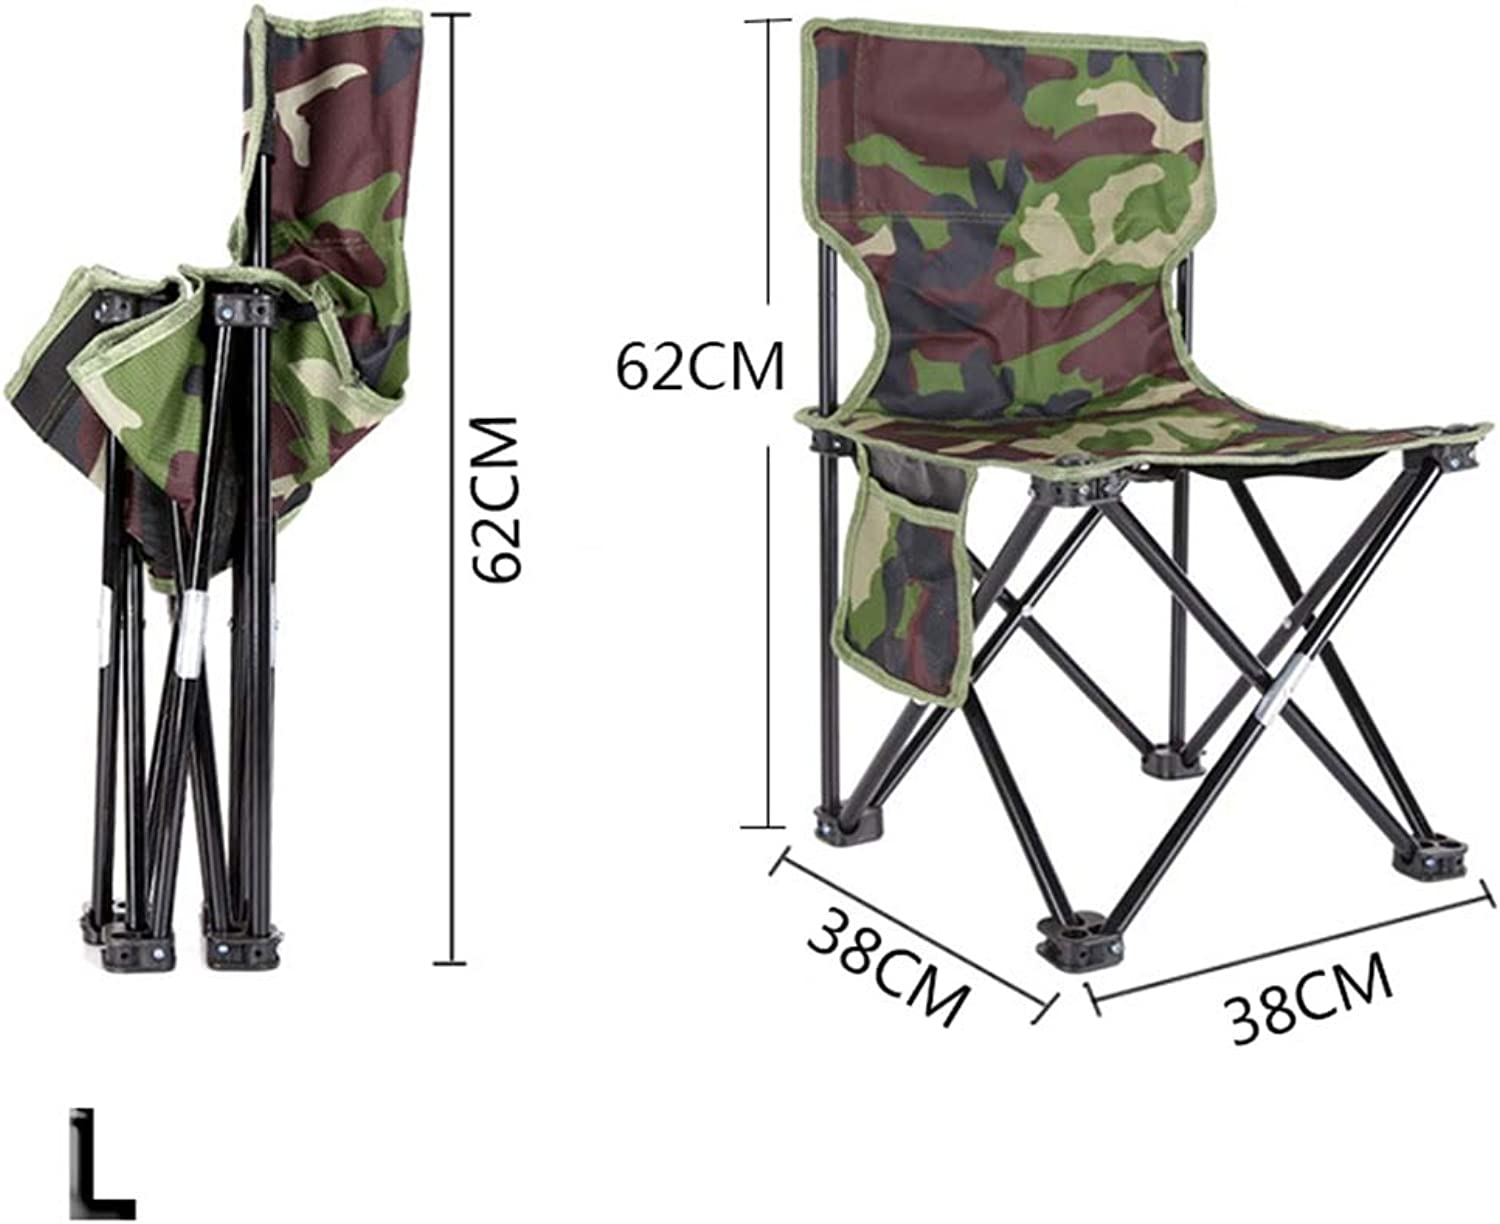 2 pcs of Outdoor Fishing Chair Camouflage Folding Chair Camping Hiking Chair Beach Picnic Rest Seat Stool 33 x 33 x 53cm